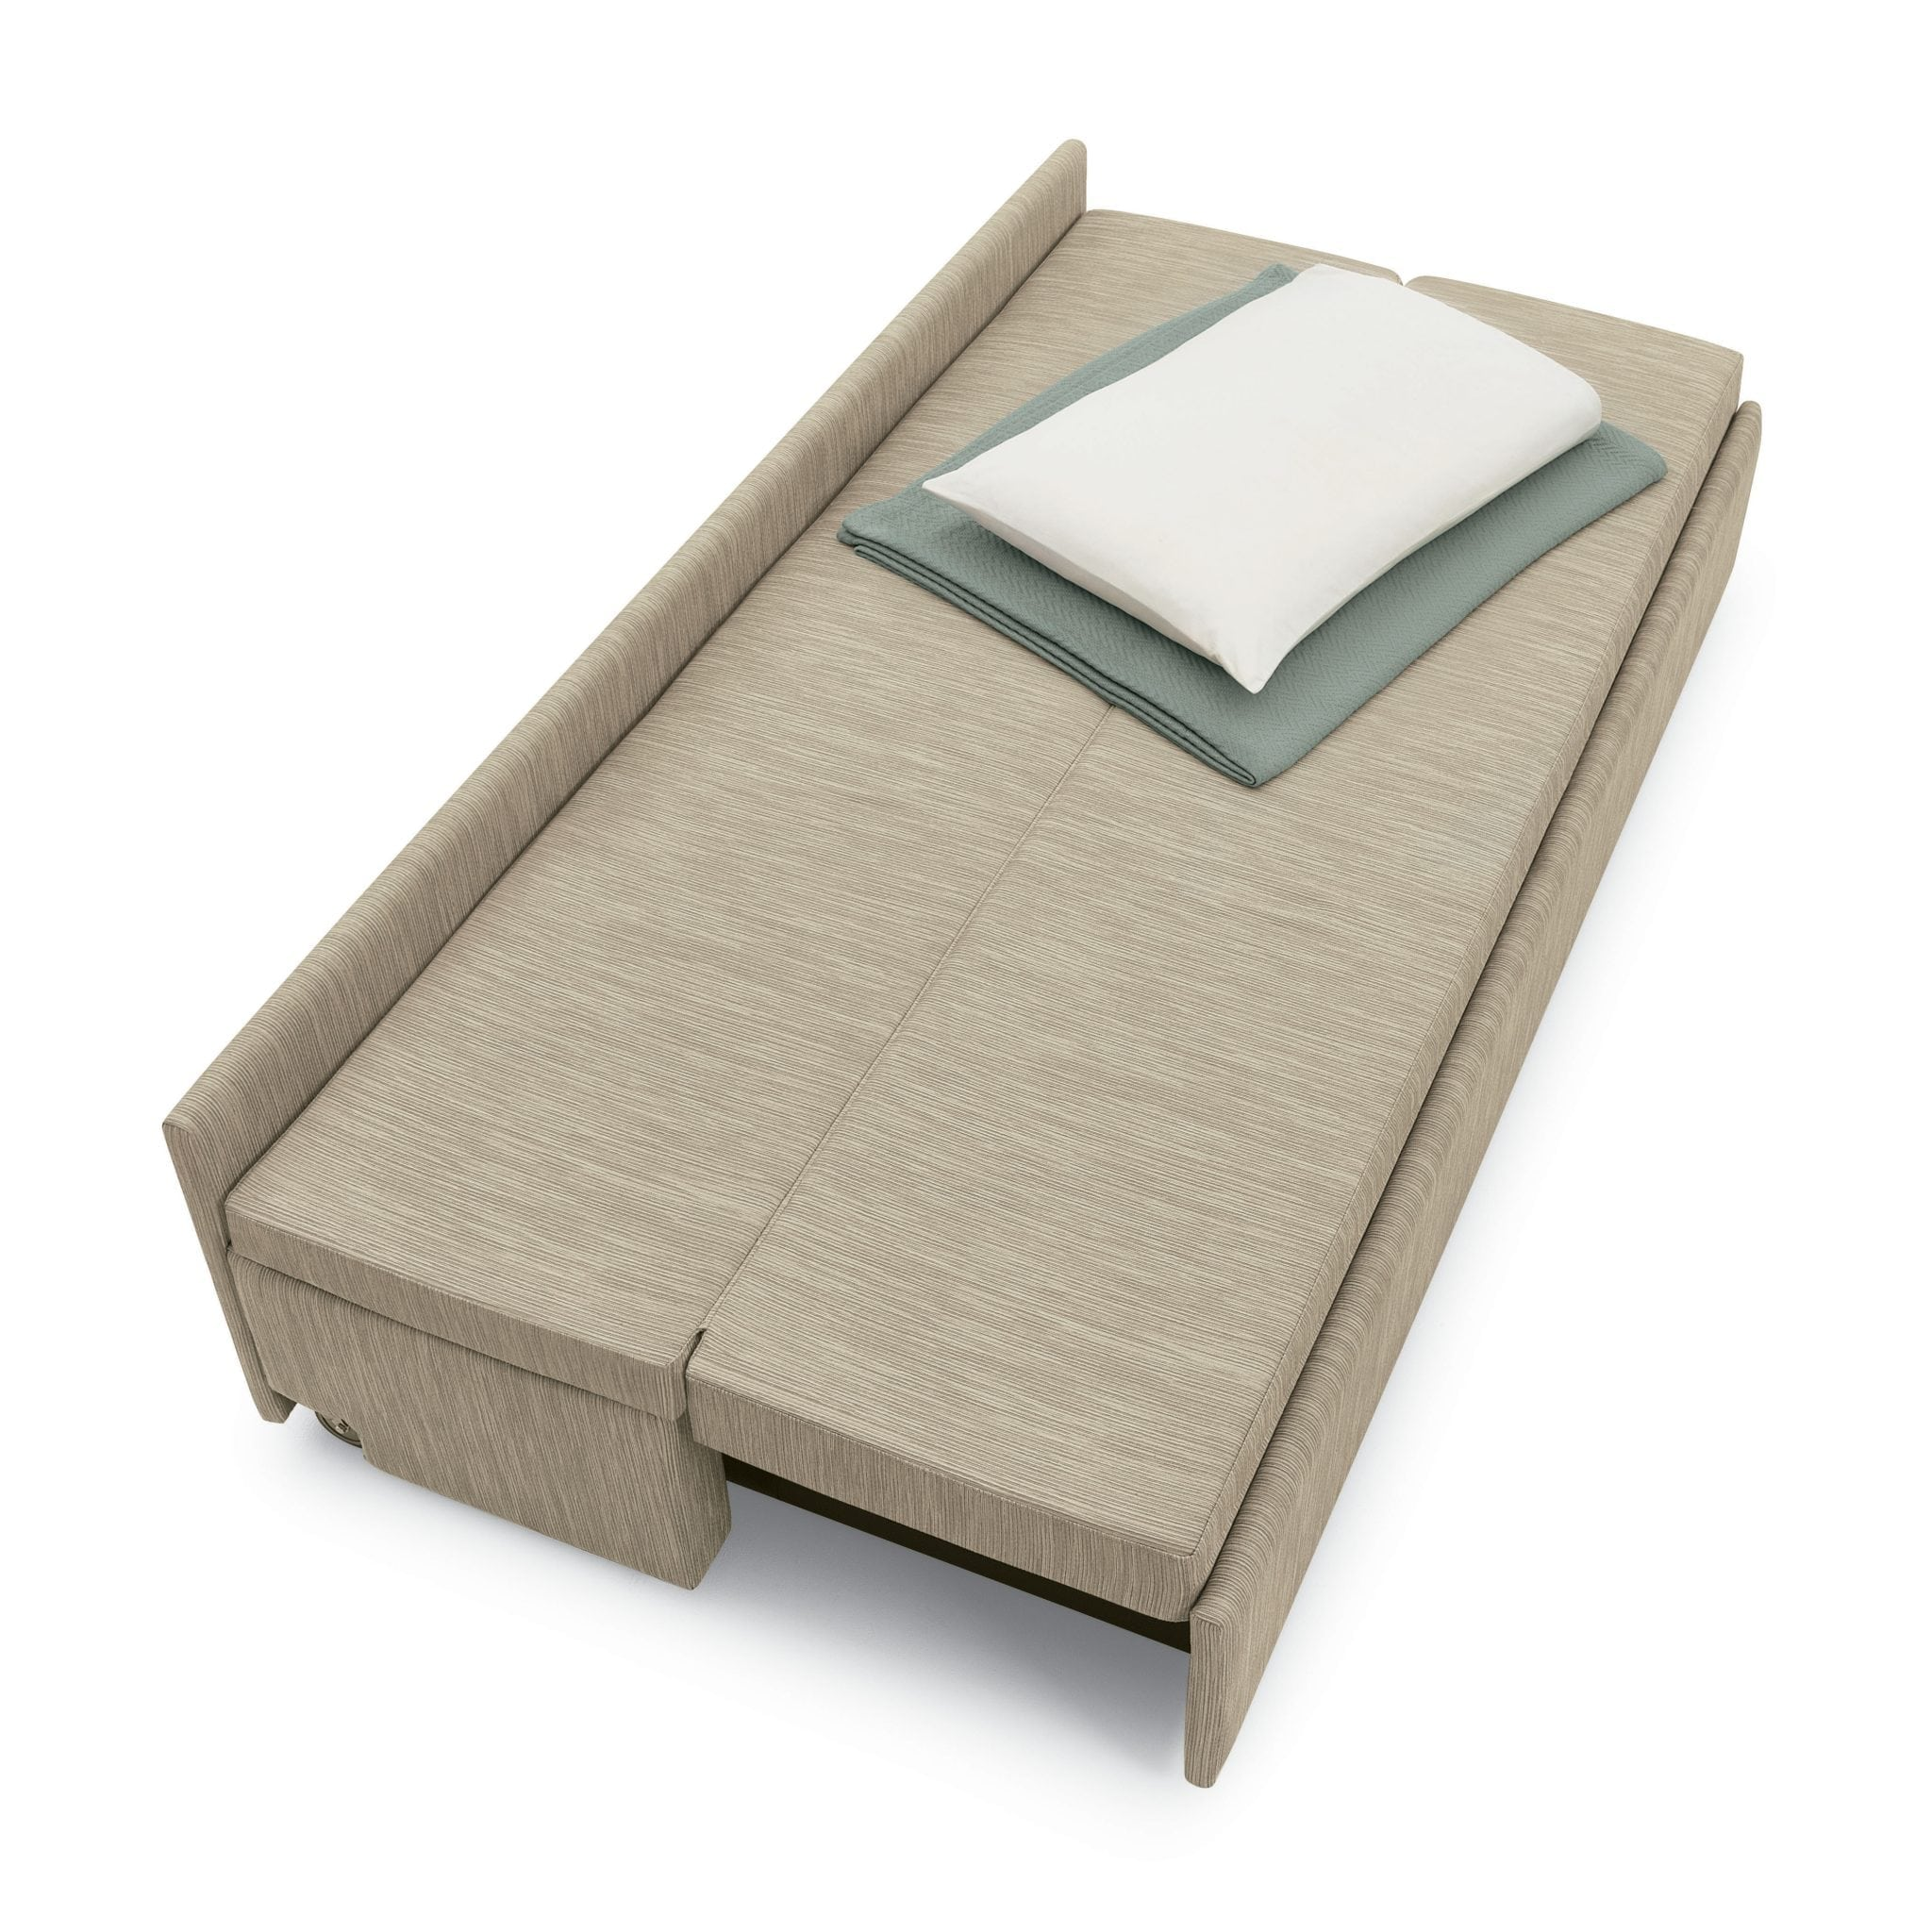 The Global Dreme Sleeper is ideal for a patient room or lounge area